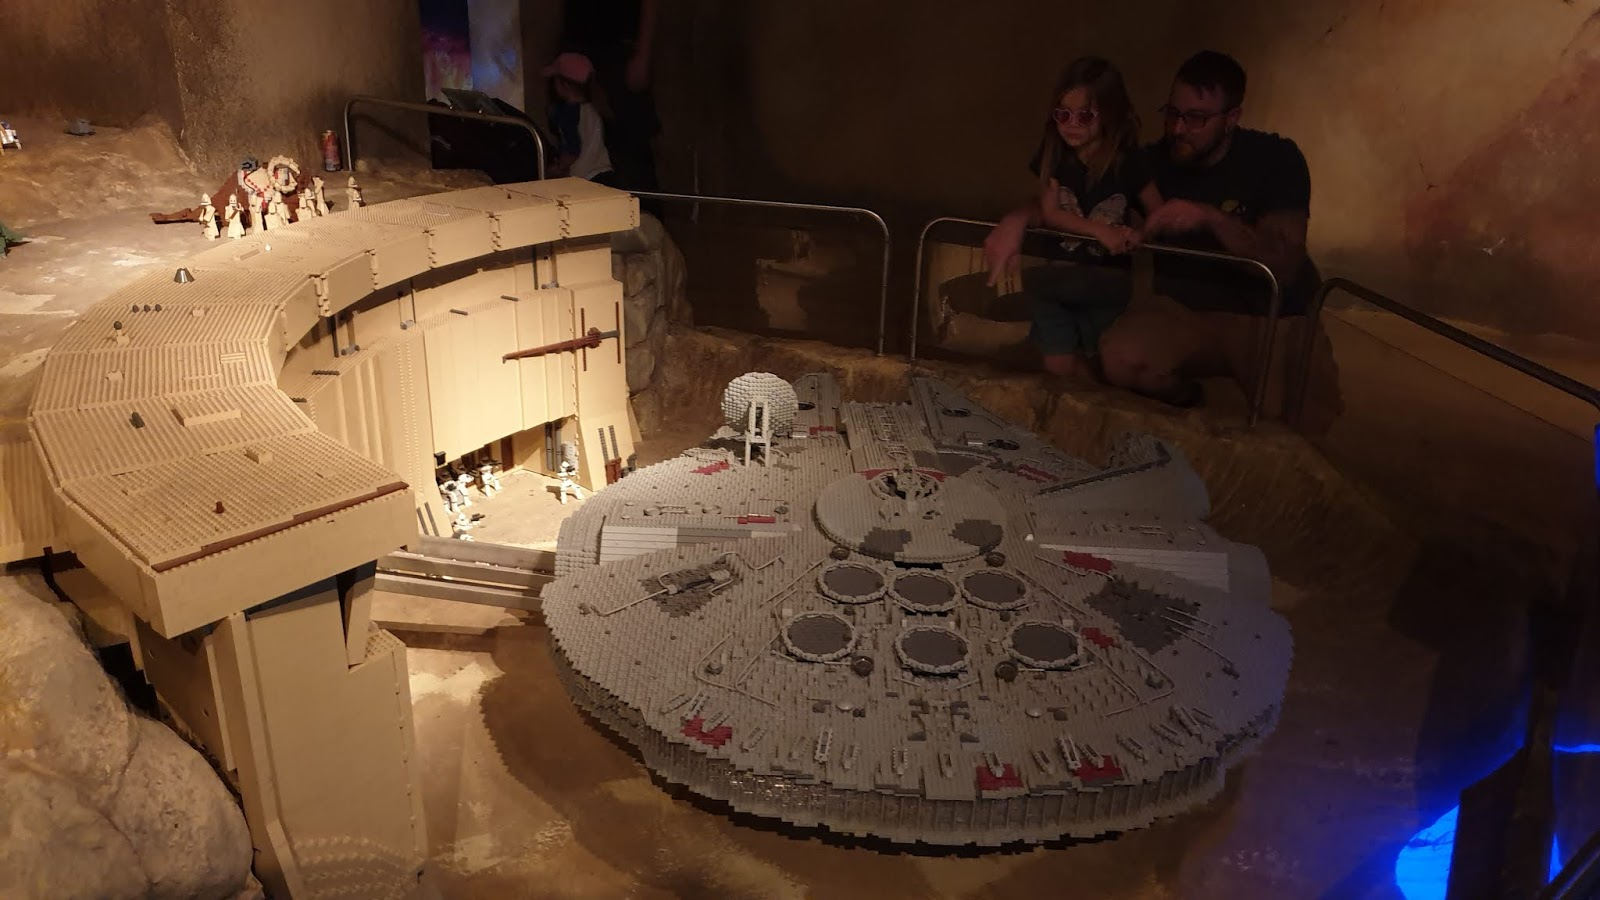 lego millennium falcon from star wars